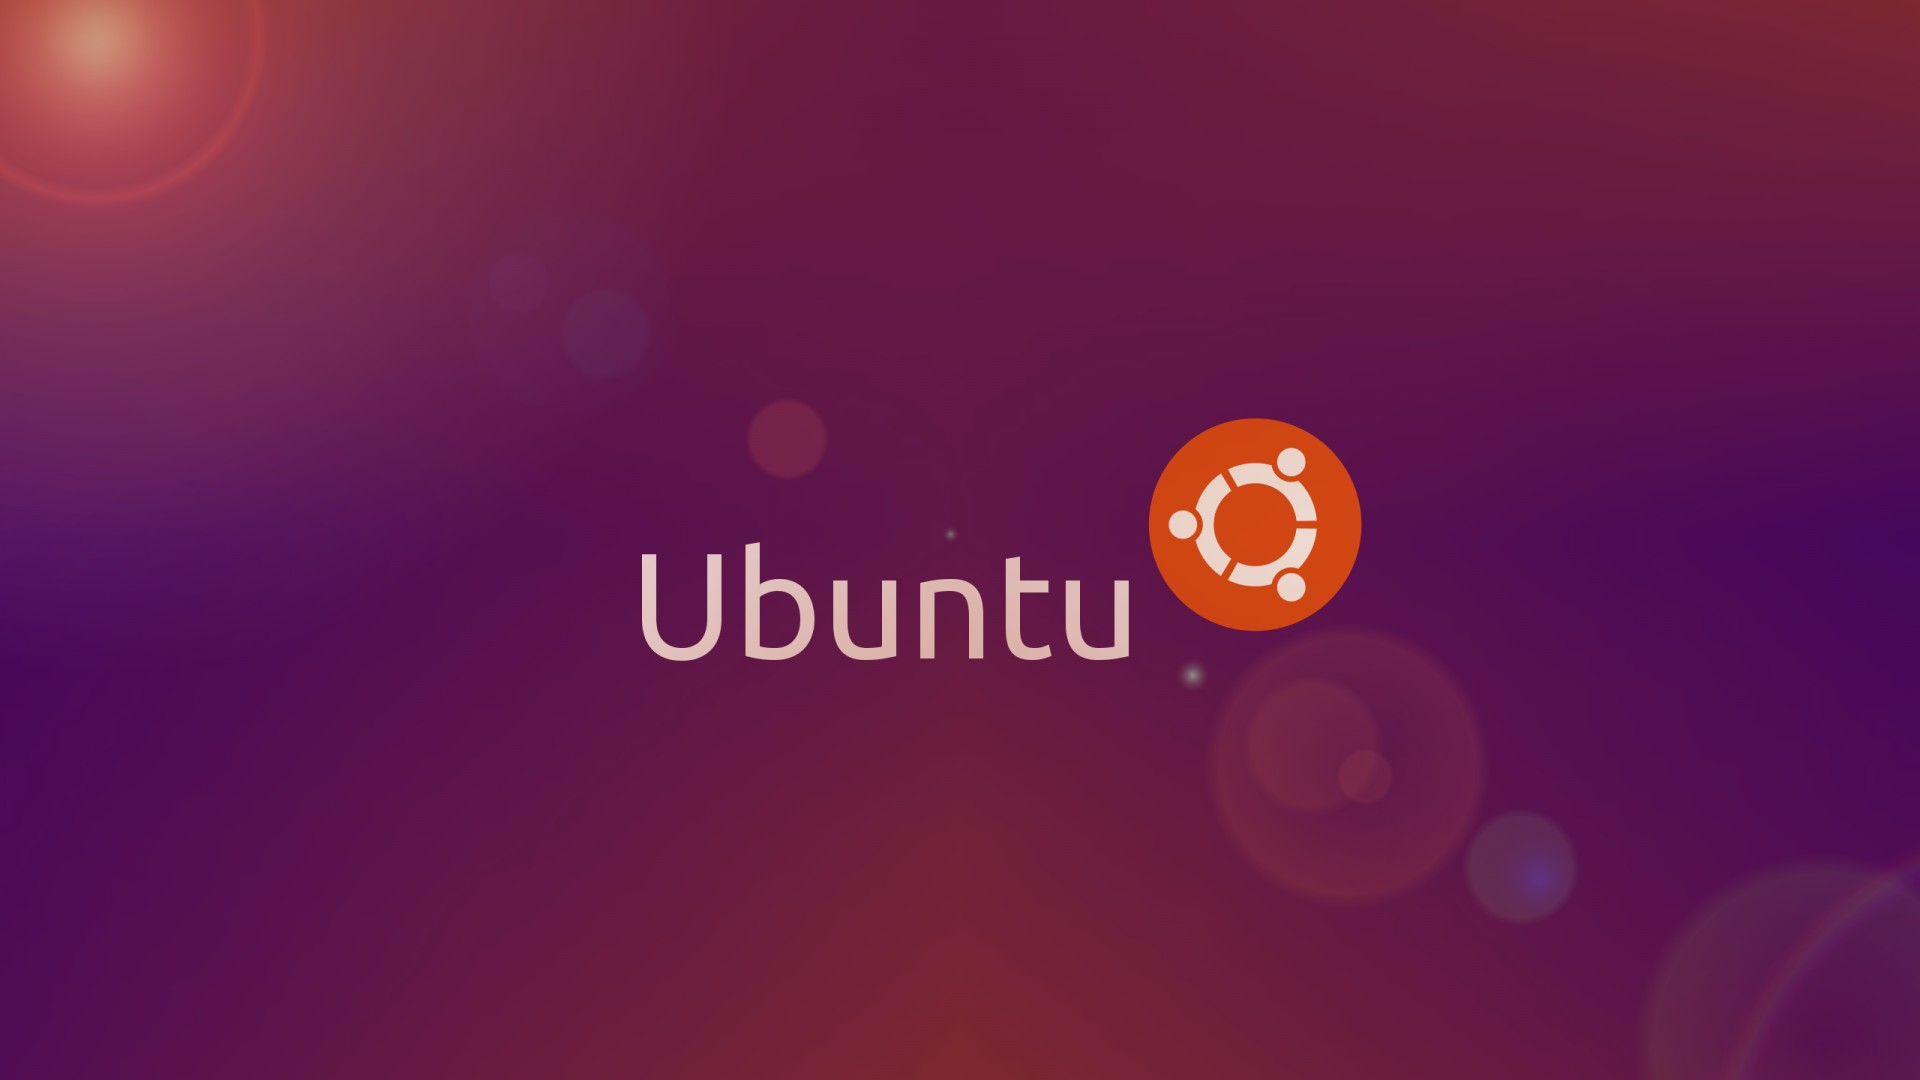 Ubuntu Wallpapers High Definition Wallpaper 1920x1080 1920x1080